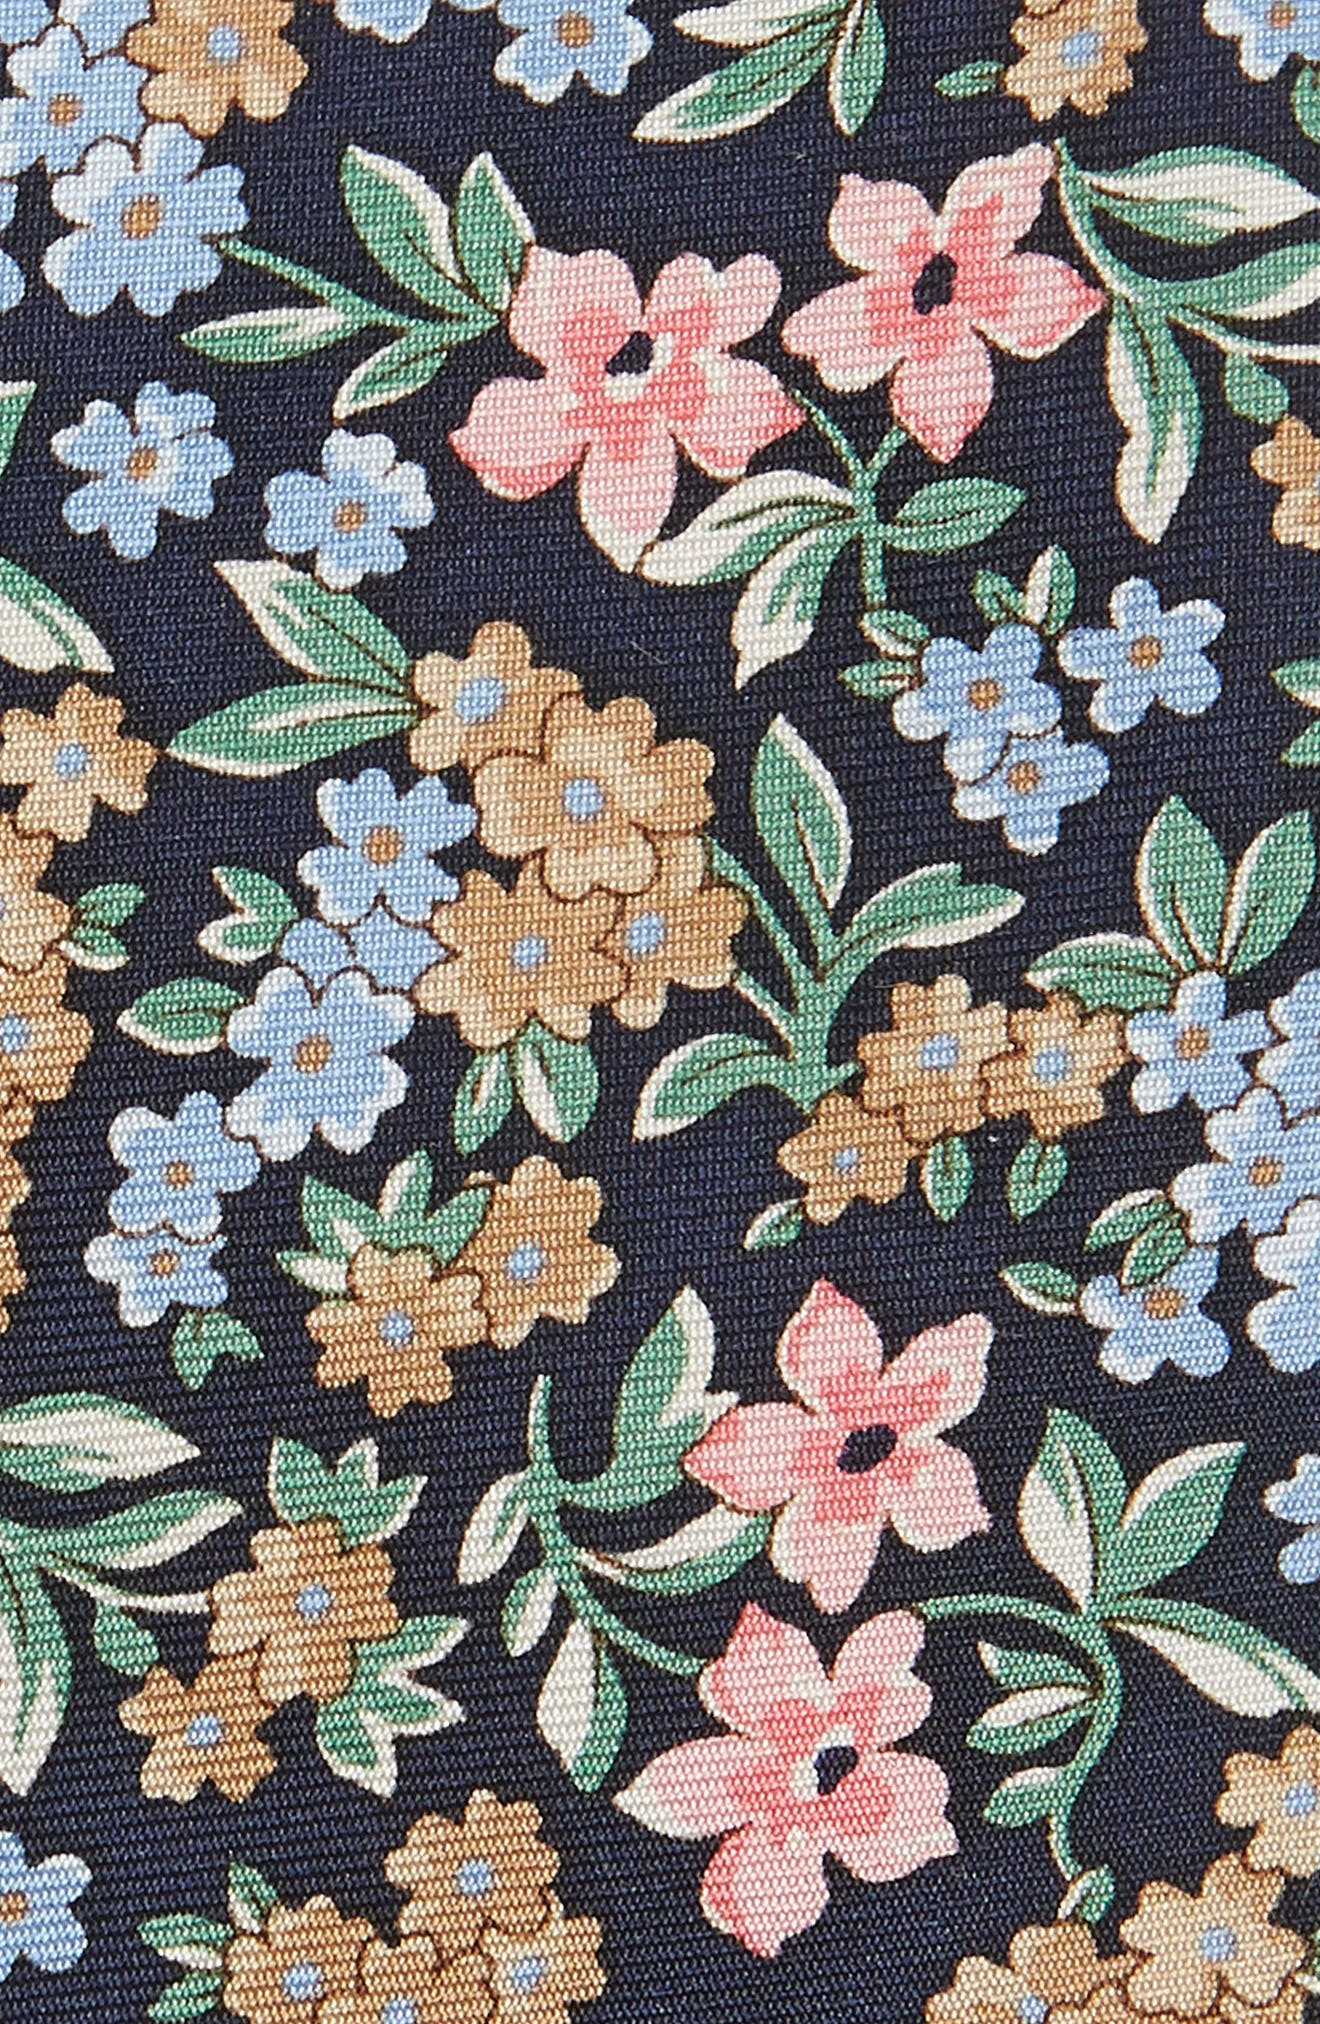 Cassidy Floral Silk Skinny Tie,                             Alternate thumbnail 2, color,                             Navy